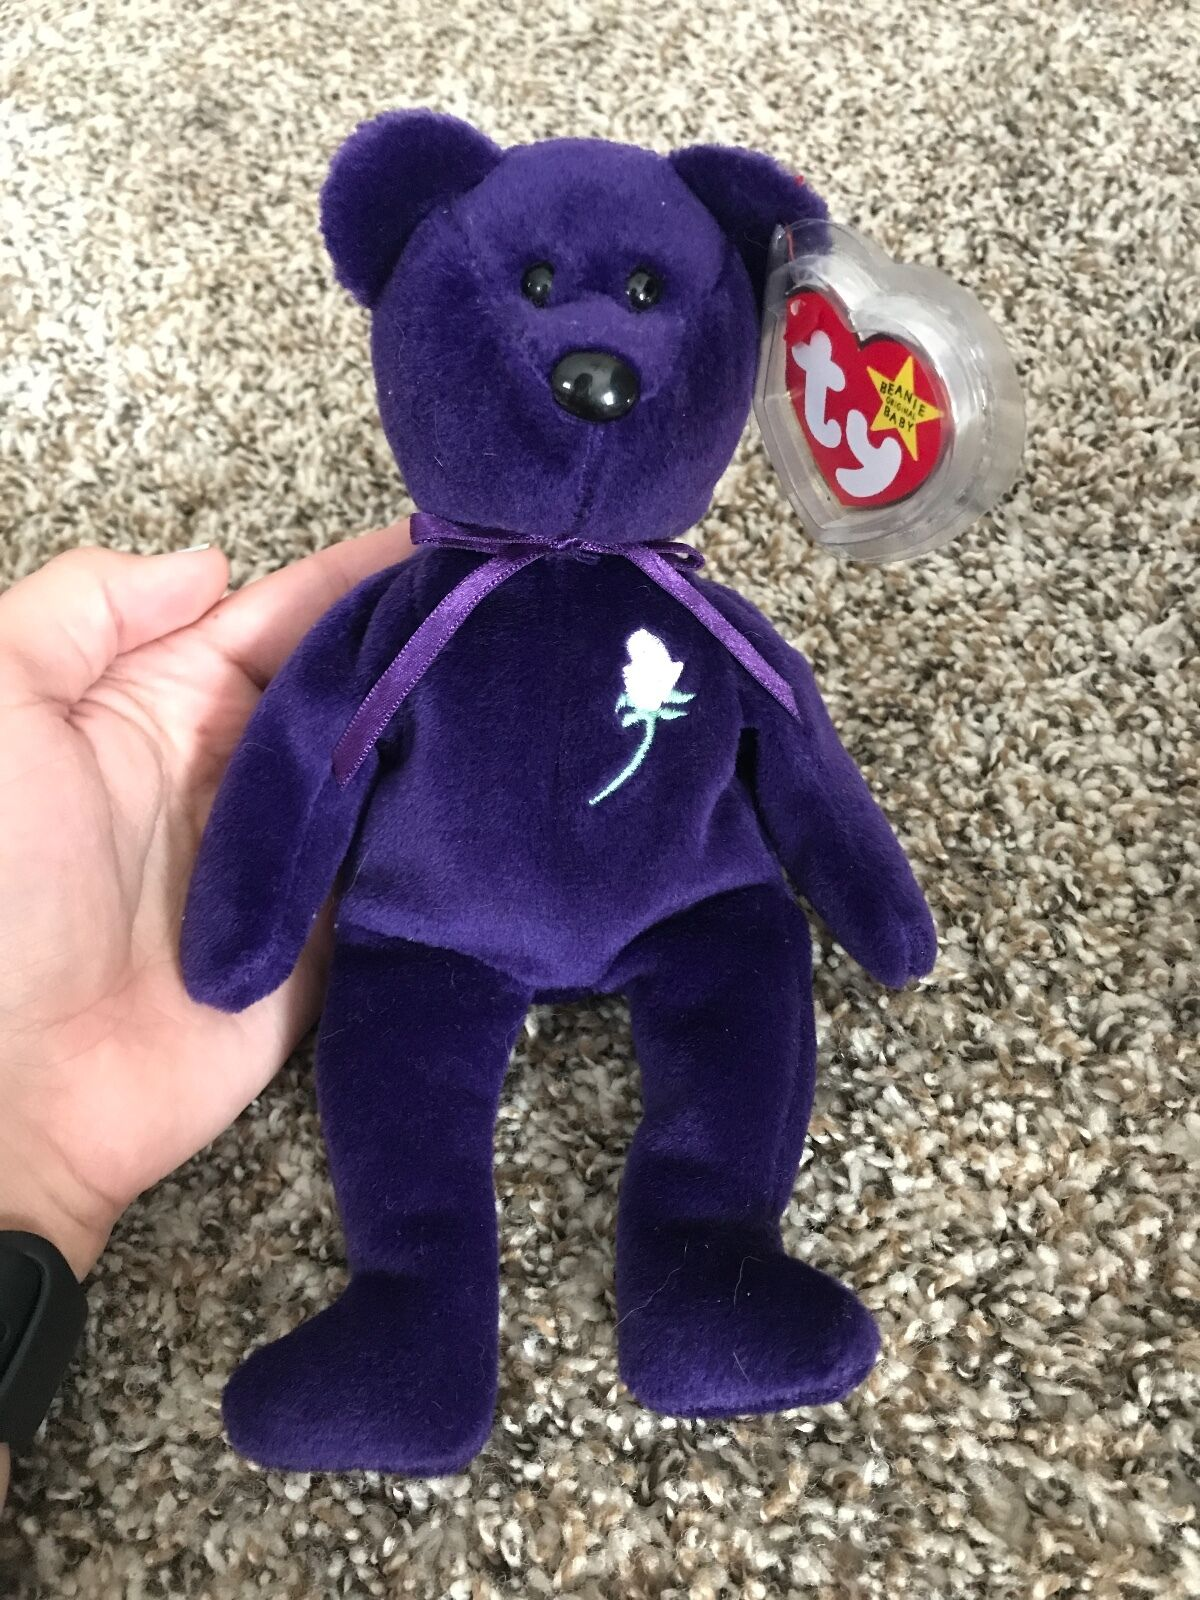 Princess Diana very rare original Ty beanie baby from 1997. Mint condition.